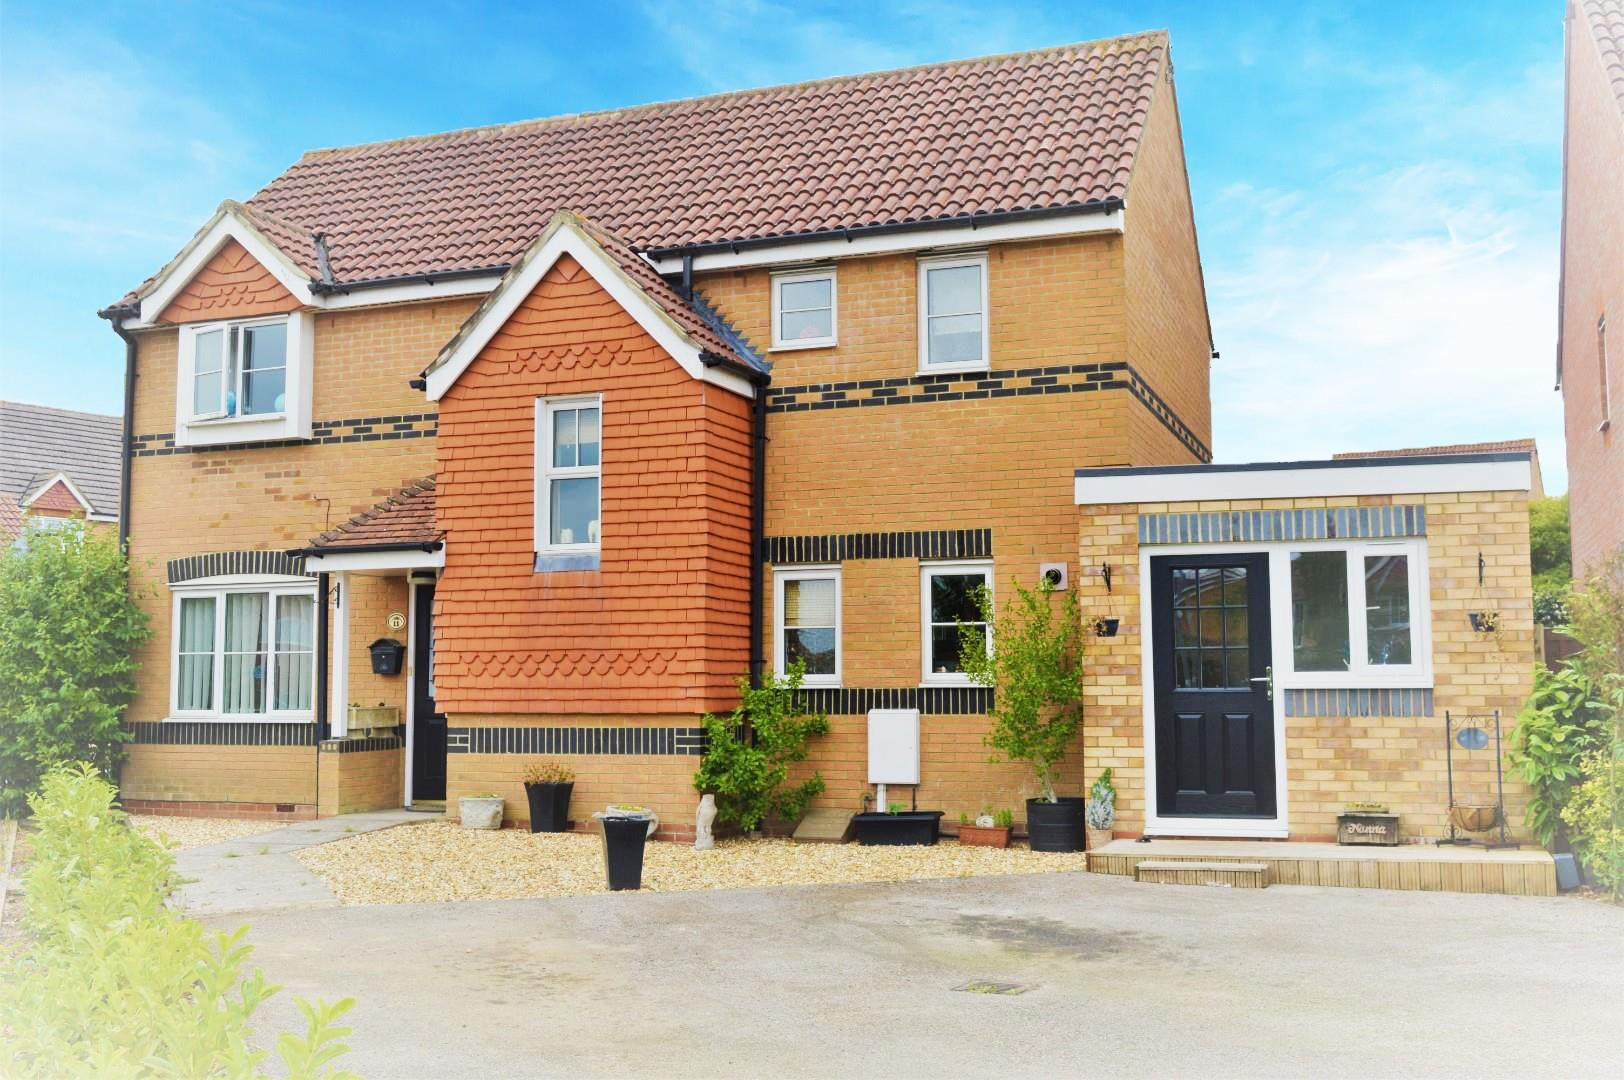 5 bed detached house for sale in Springfield Road, Northamptonshire, NN10